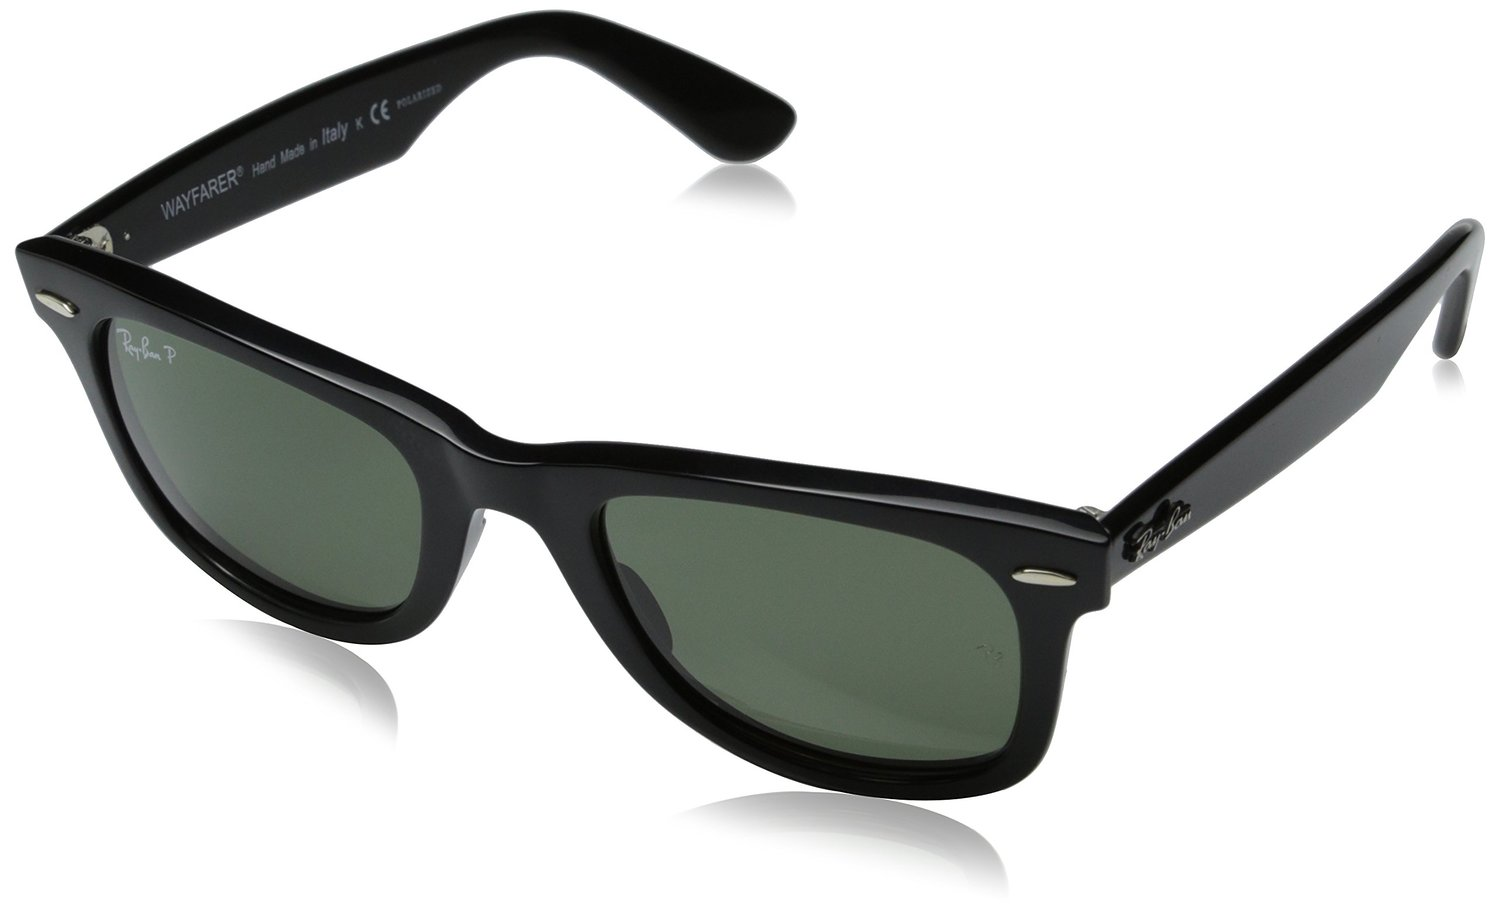 Ray Ban Mens Original Wayfarer Sunglasses